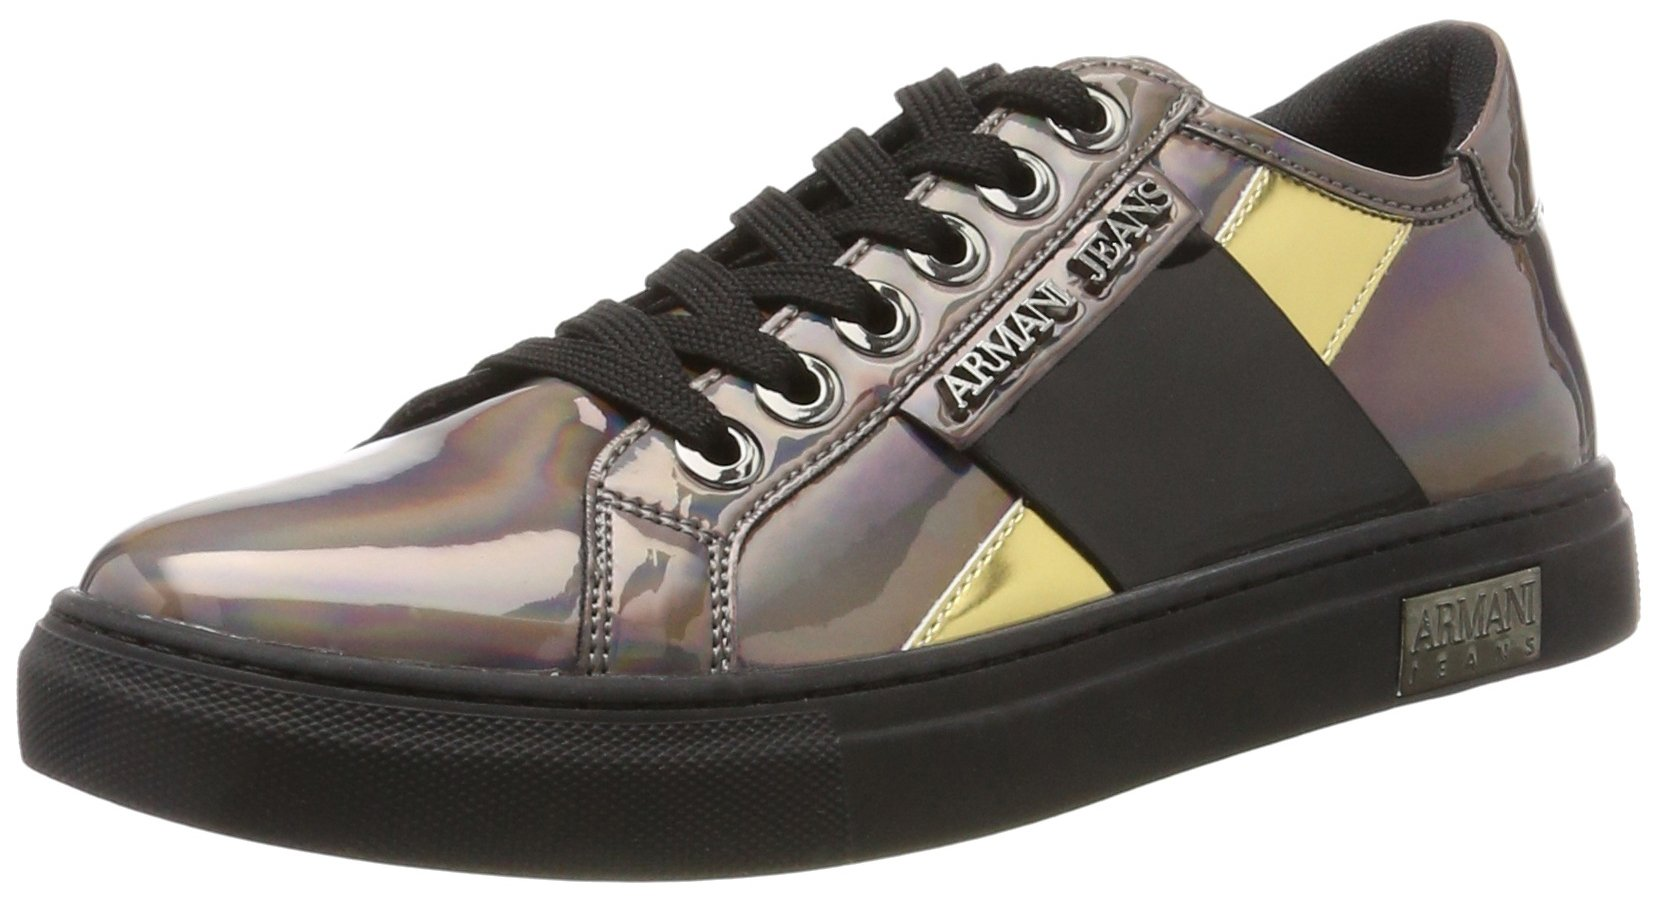 ARMANI JEANS Women's Low Top Lace up Metallic Sneaker, Gun Metal, 39 M EU (9 US)